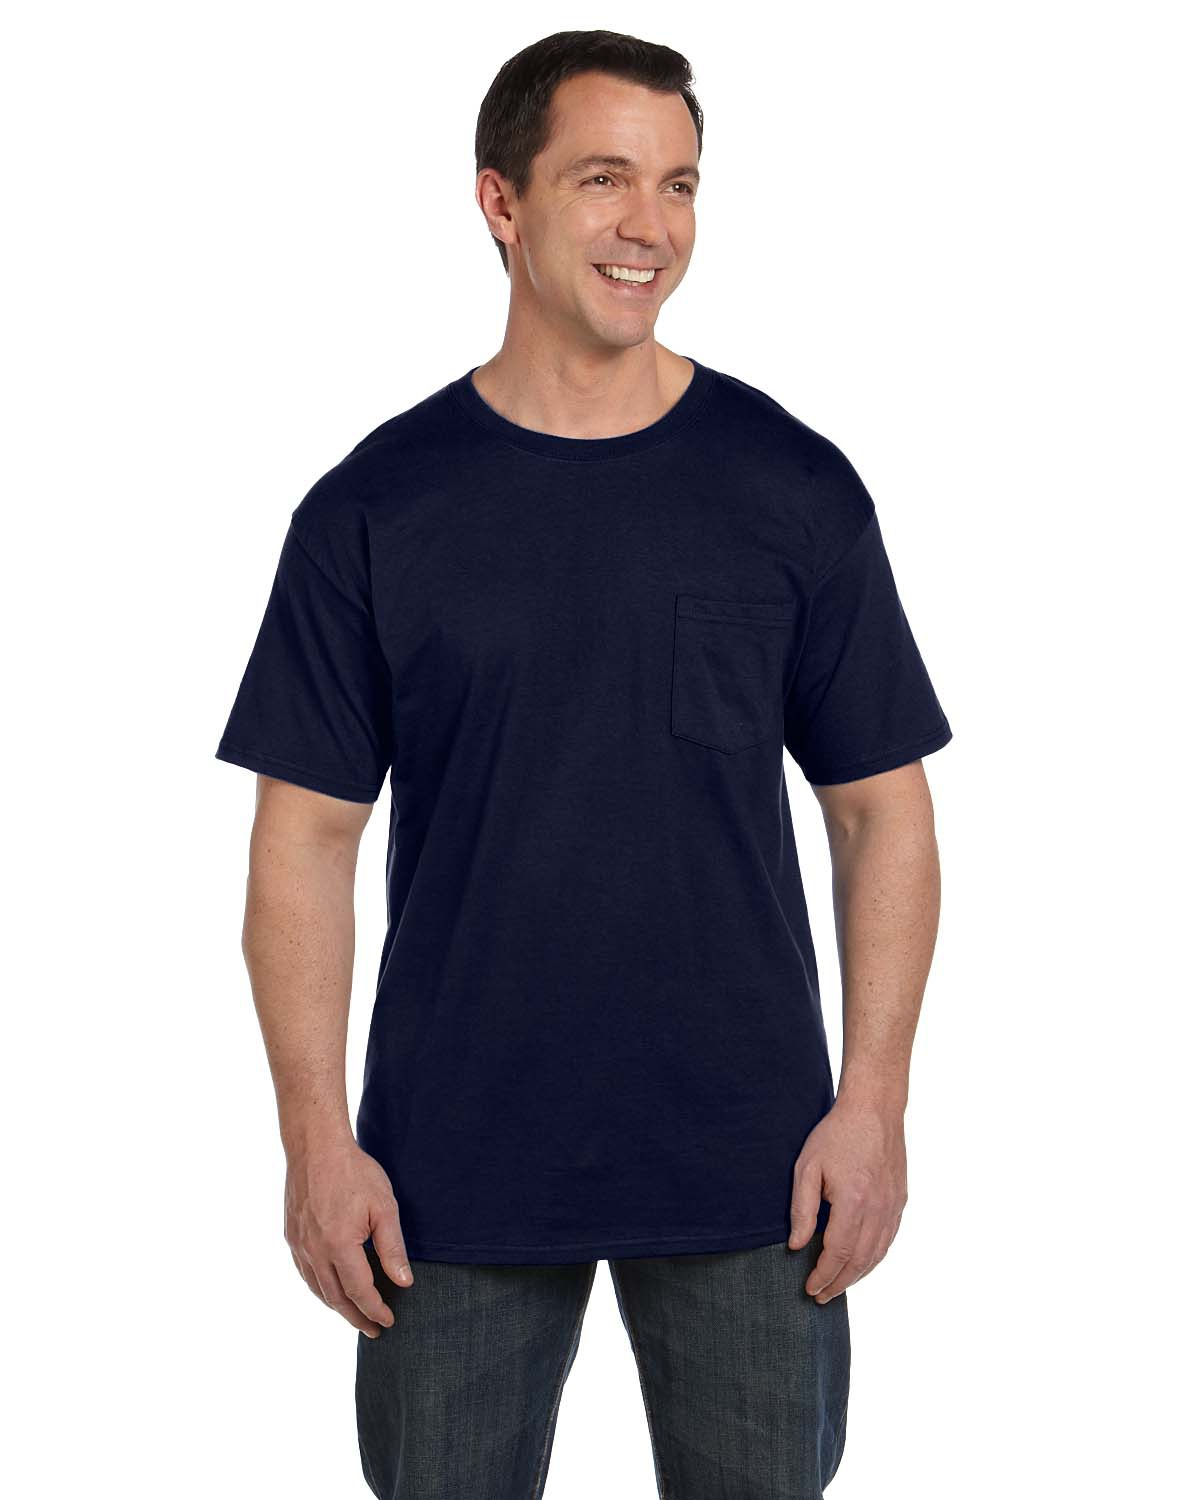 Hanes 5190P  Beefy-T with a pocket